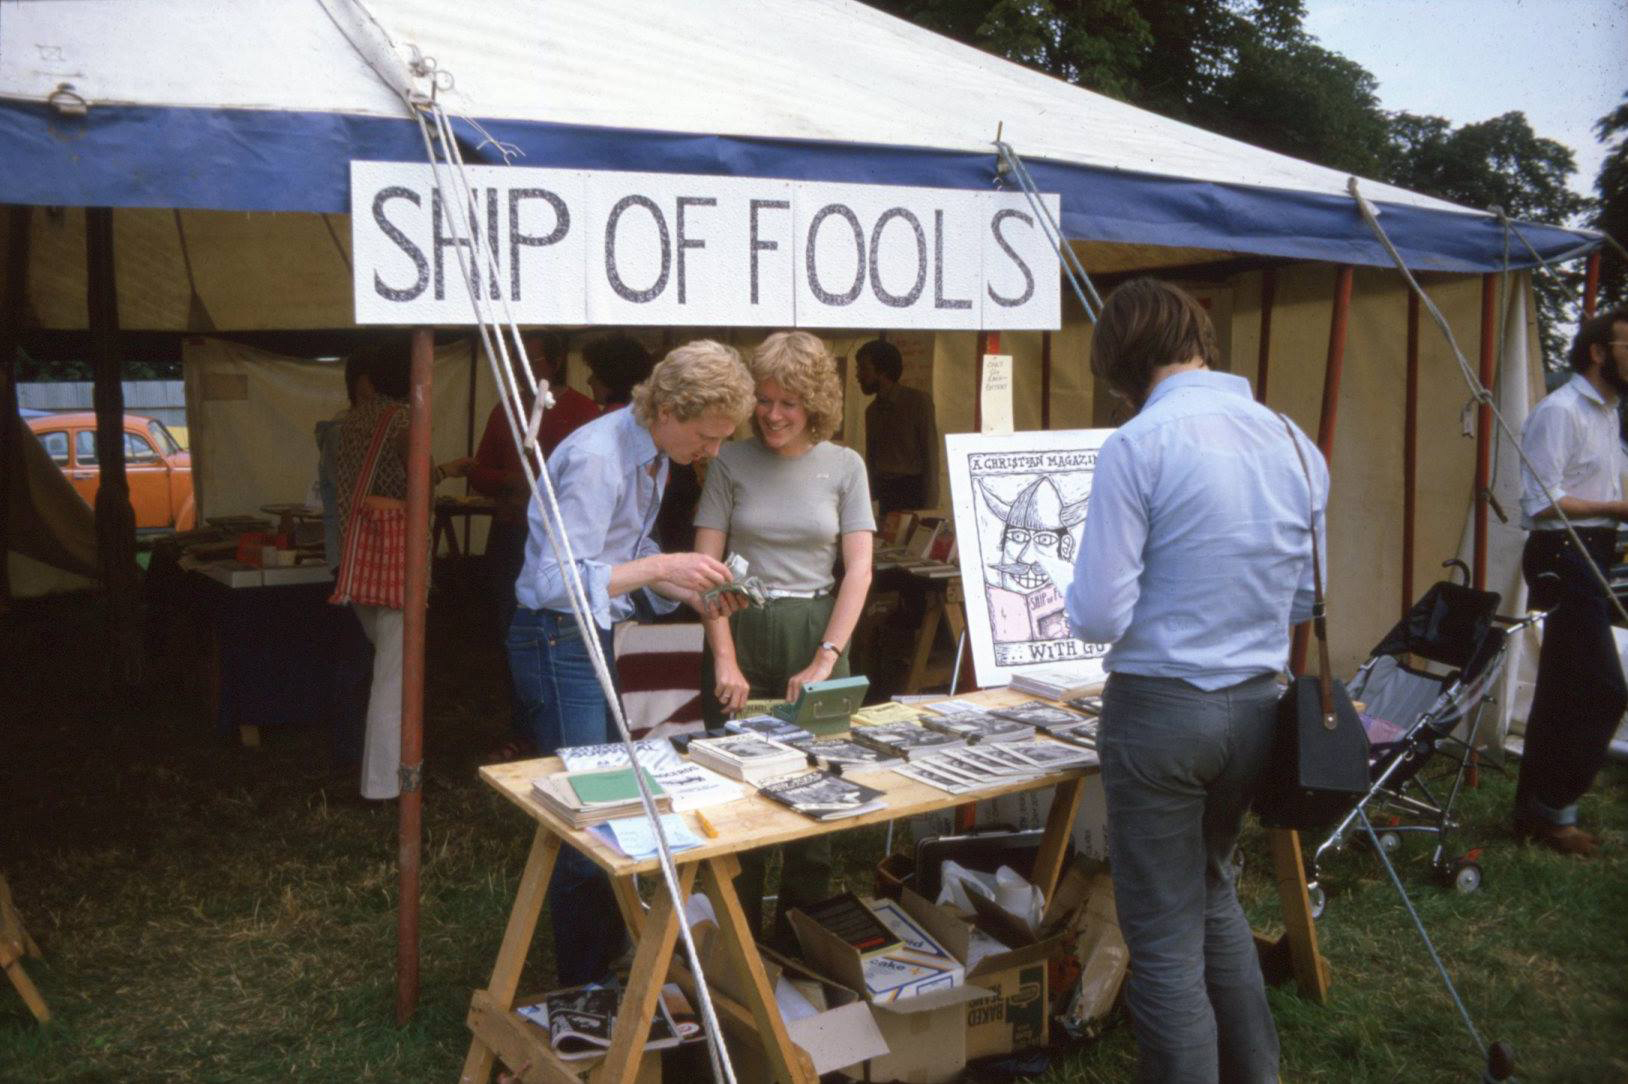 Ship of Fools on sale at Greenbelt, 1982